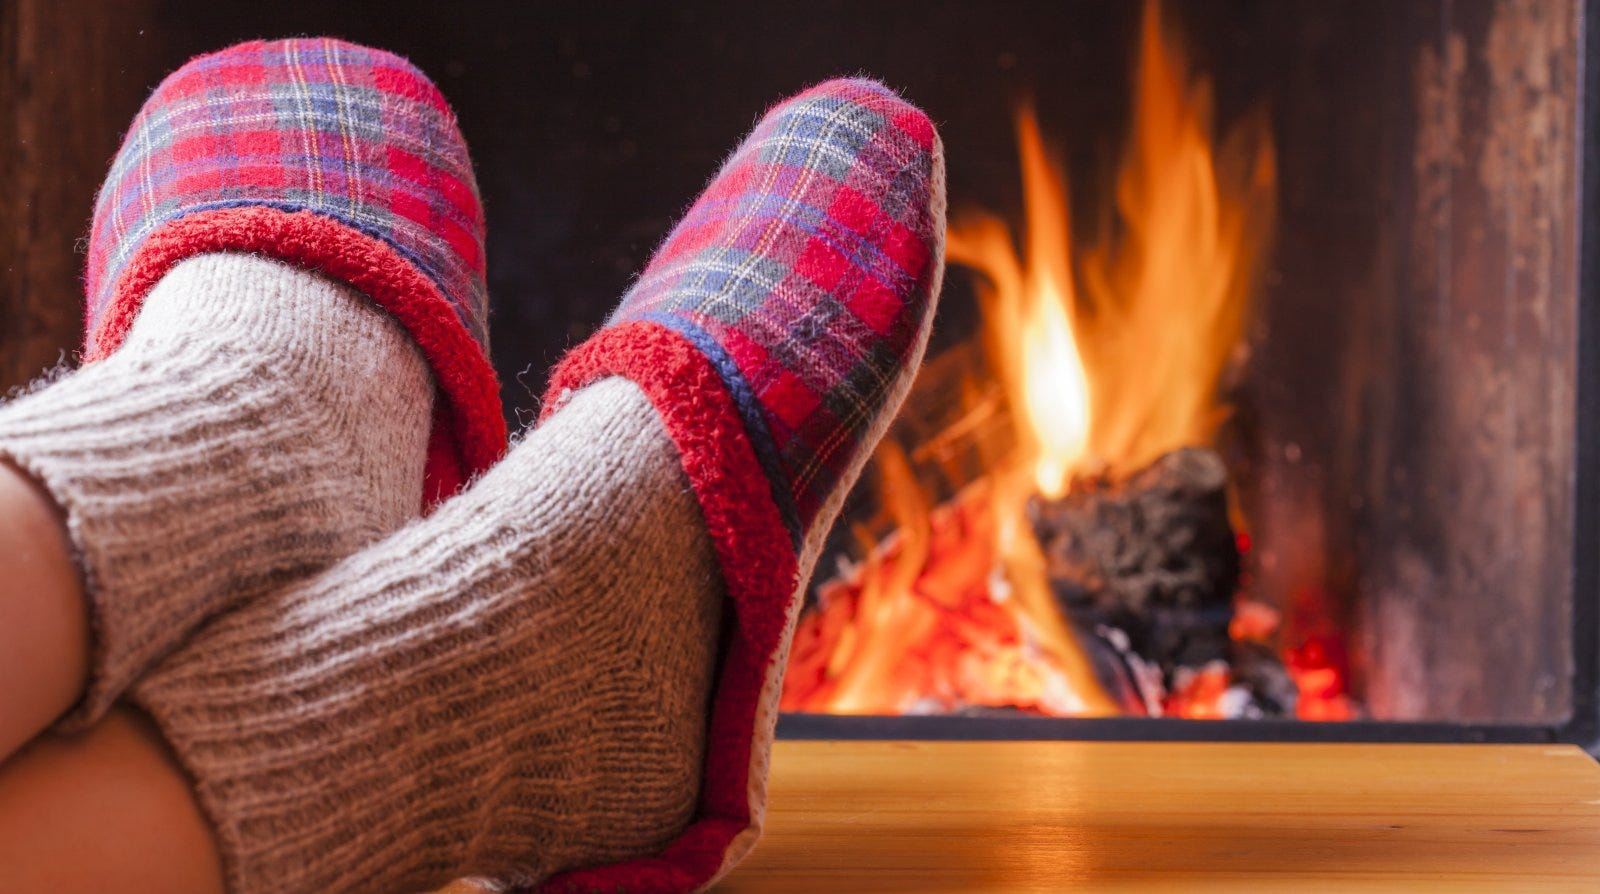 closeup of feet wearing slippers propped in front of a fireplace